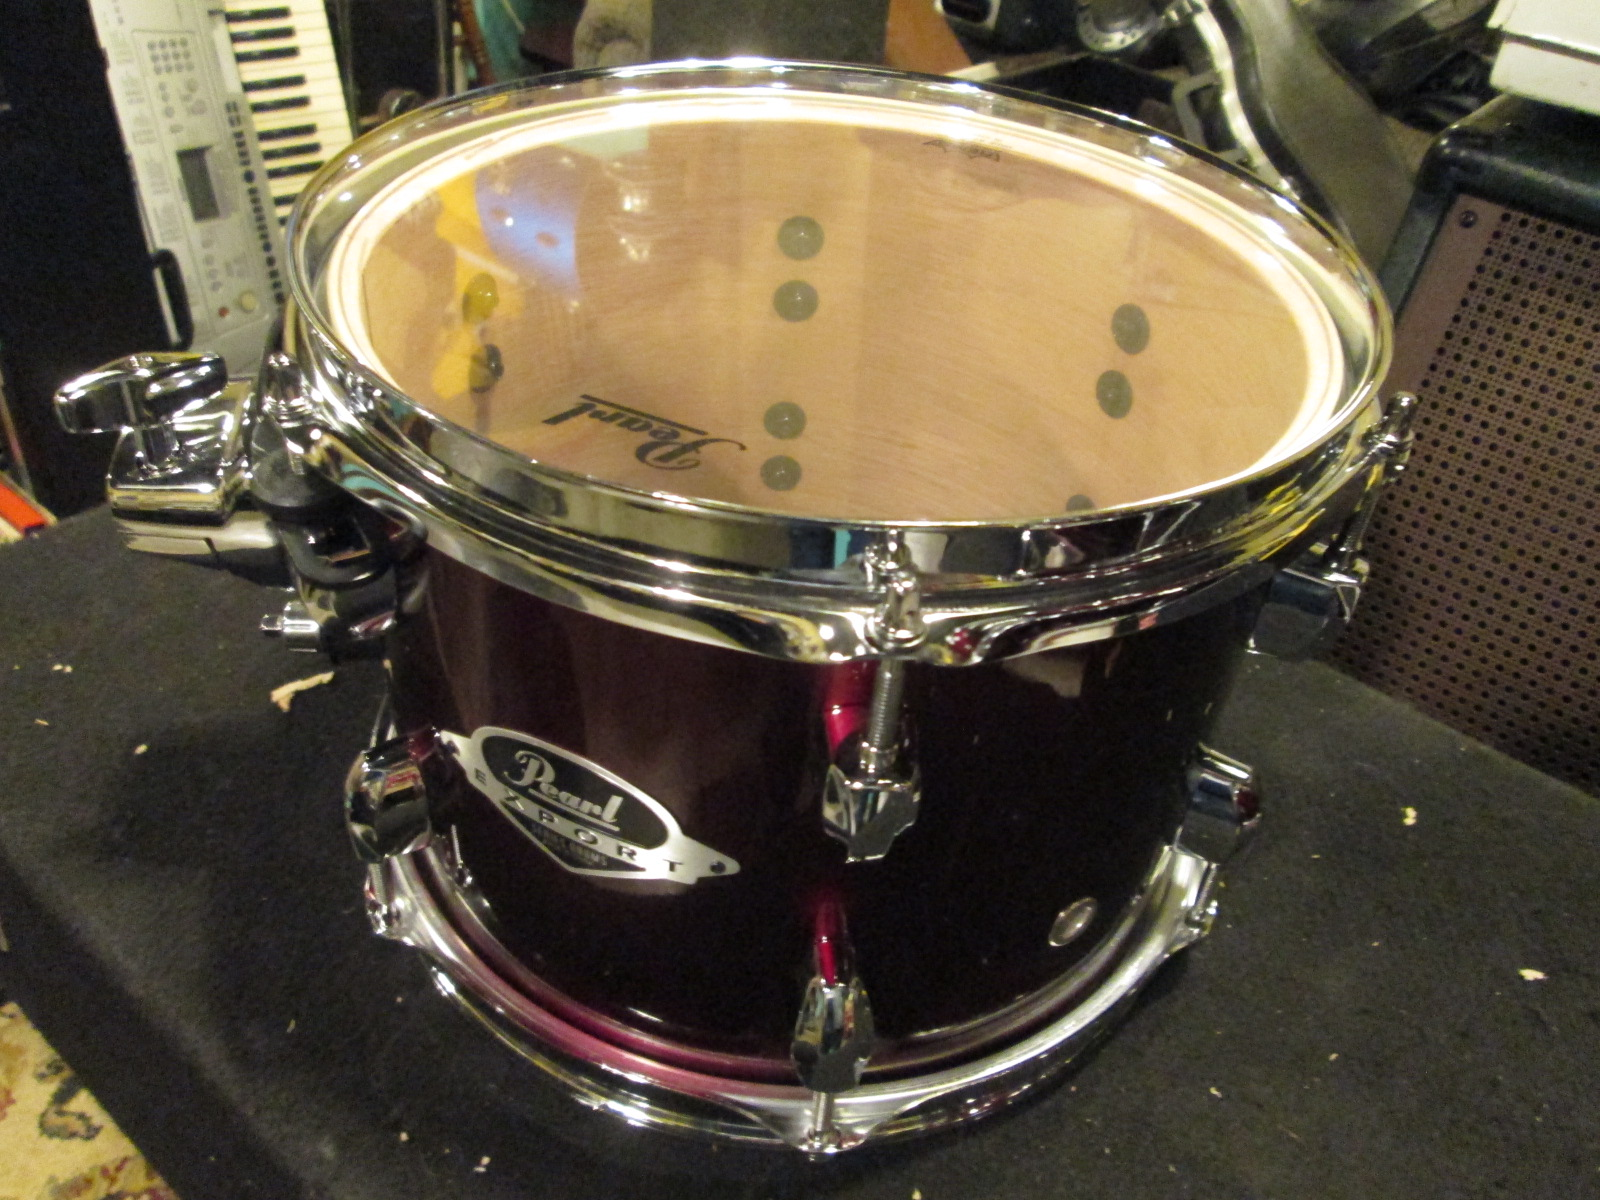 Small Town Music In House Inventory Home Page Switch Rocker Lighted Power Used Jcm Series Others Antique Gibraltar Hi Hat Stand 9707nl Dp 119 New Exc 7900 Pic1 Pic2 Pic3 Pic4 Pearl Export Quiet Shock Mount 10 Tom Drum Wine Red